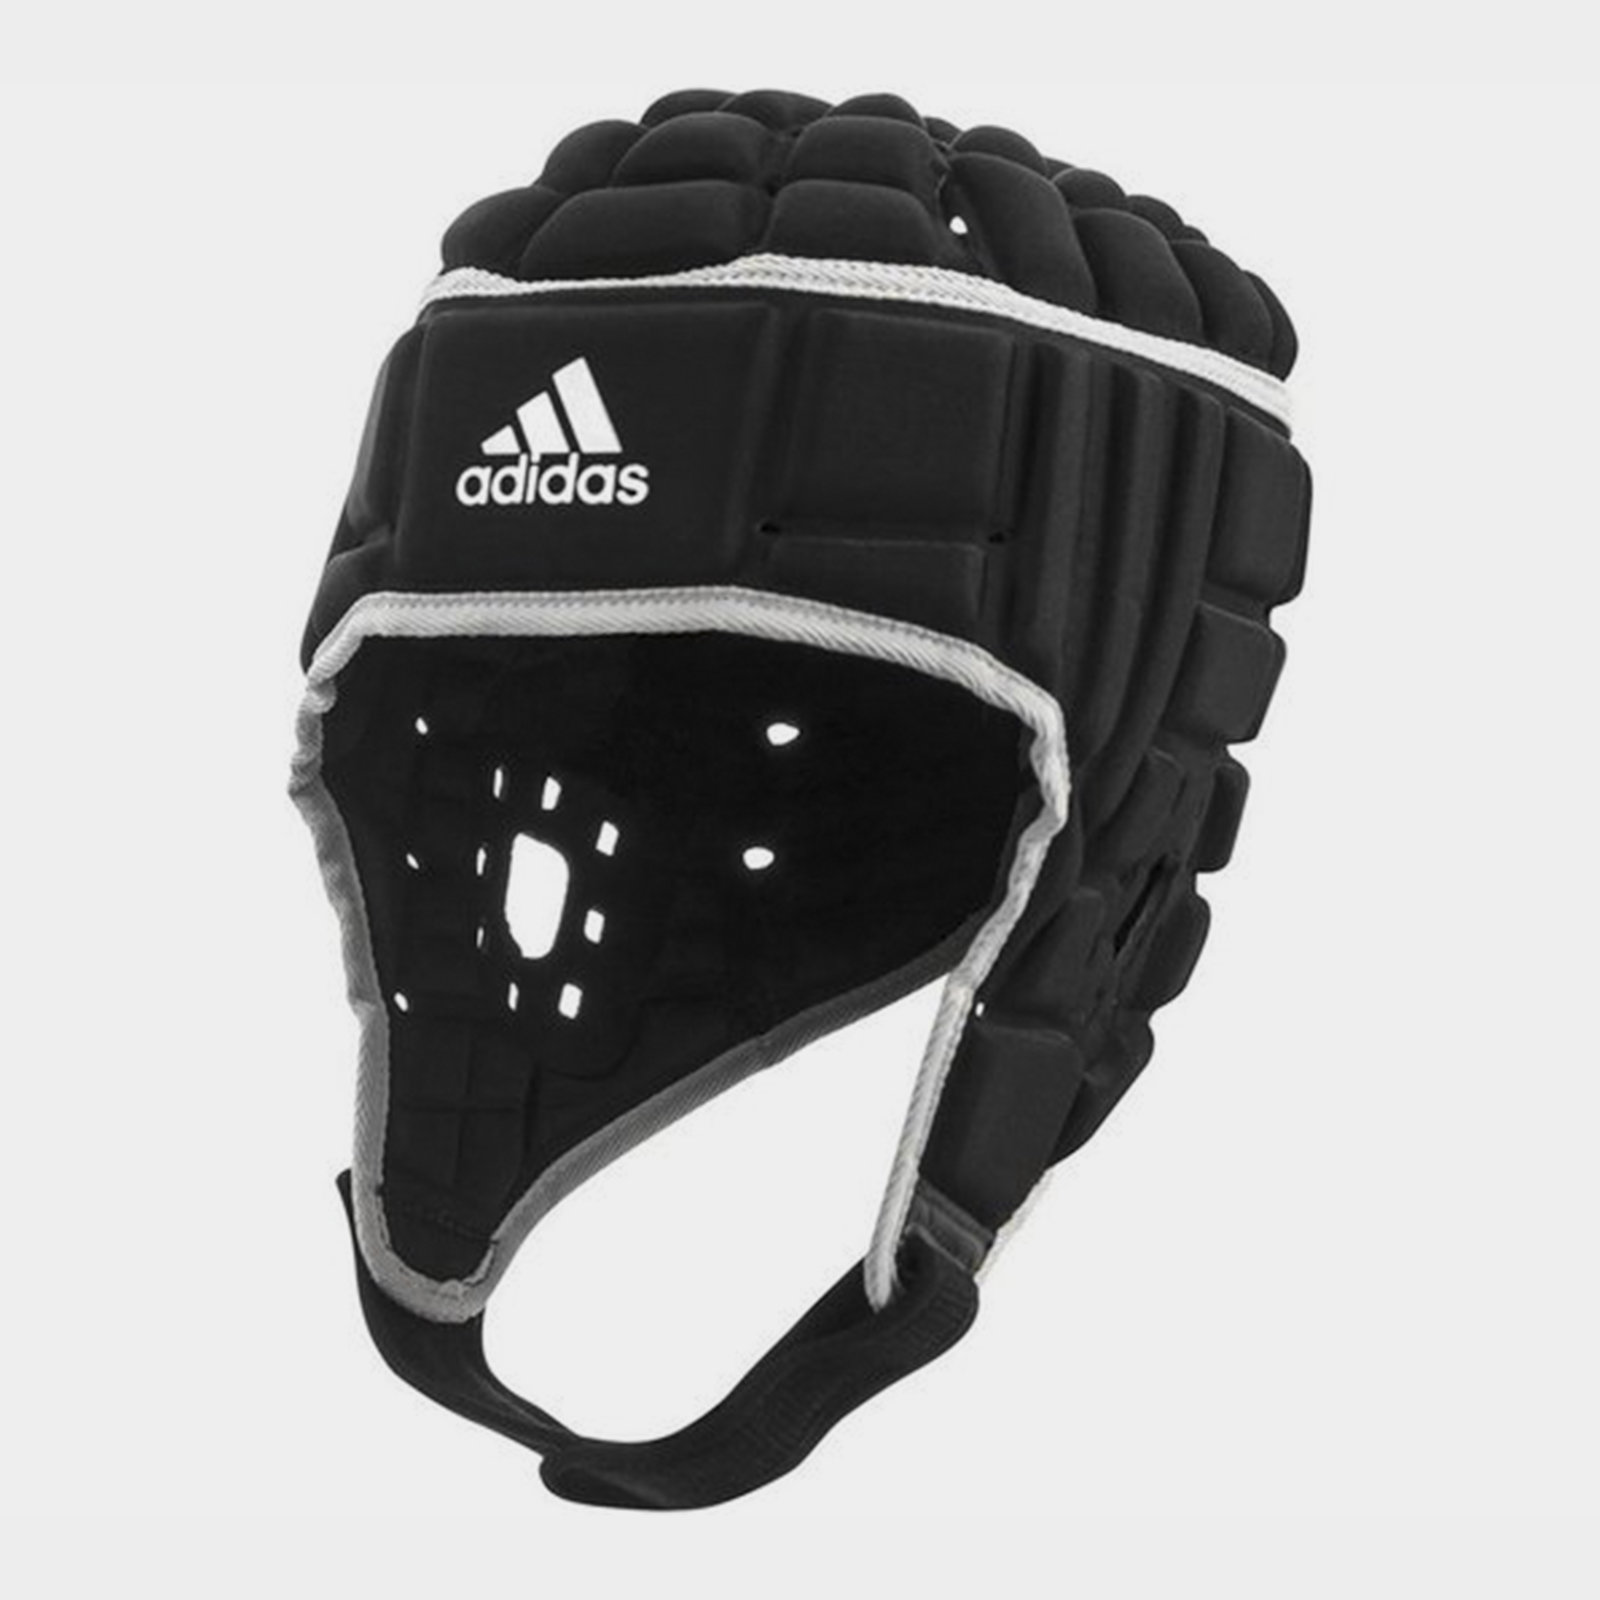 Image of Adidas Rugby Head Guard